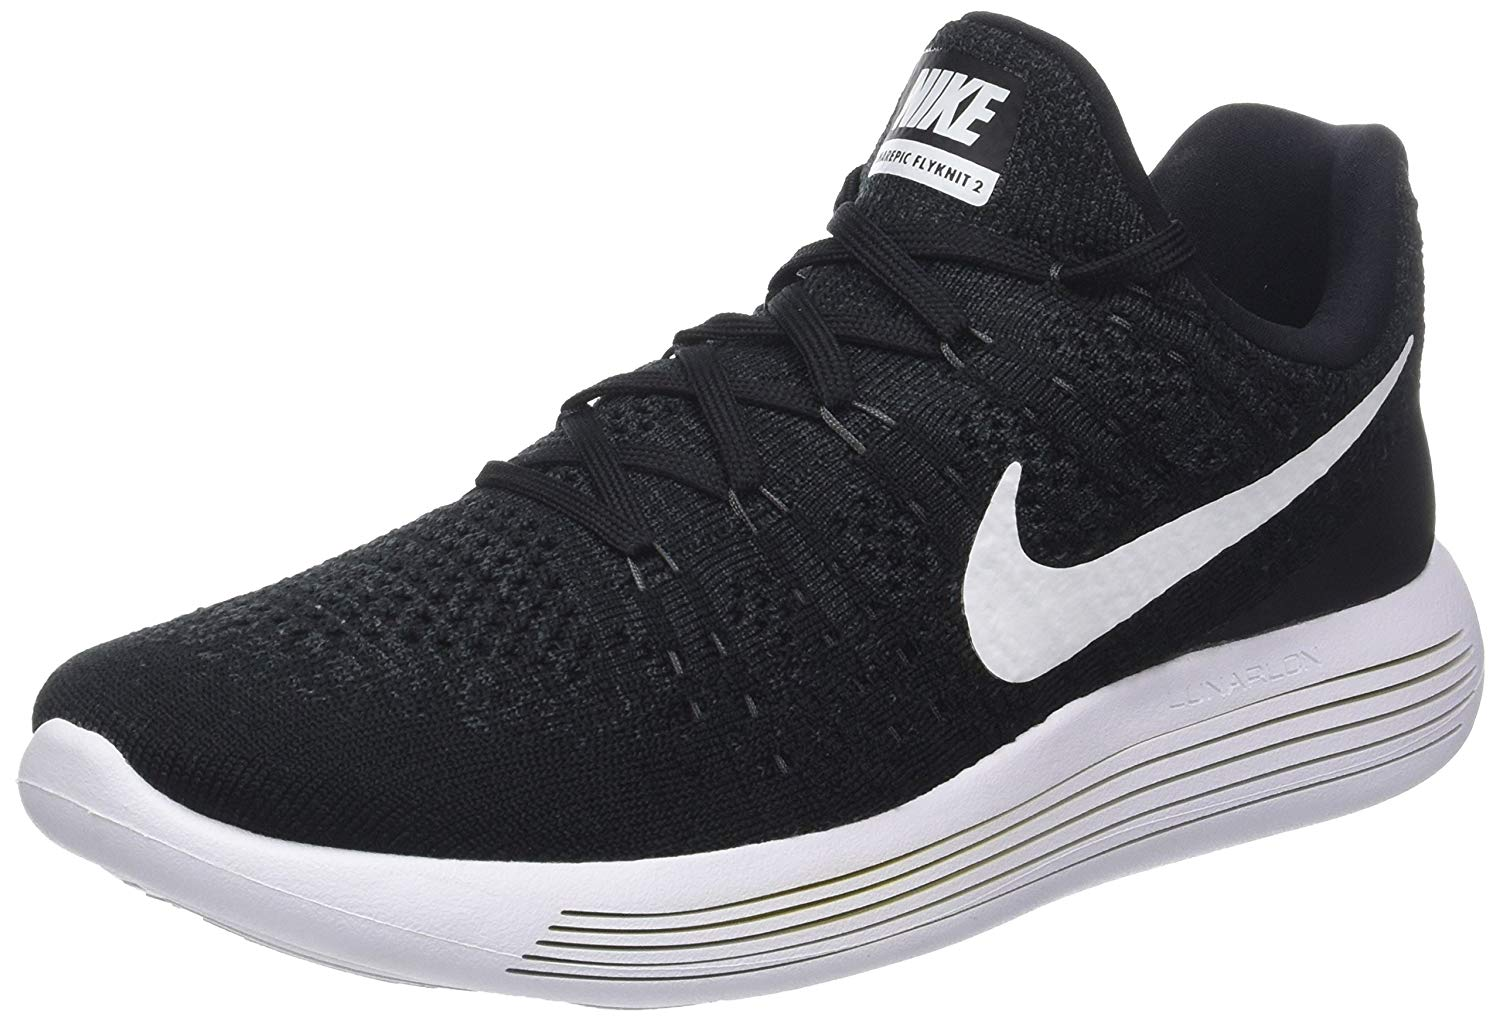 This is an angled view of the Nike LunarEpic Low Flyknit 2